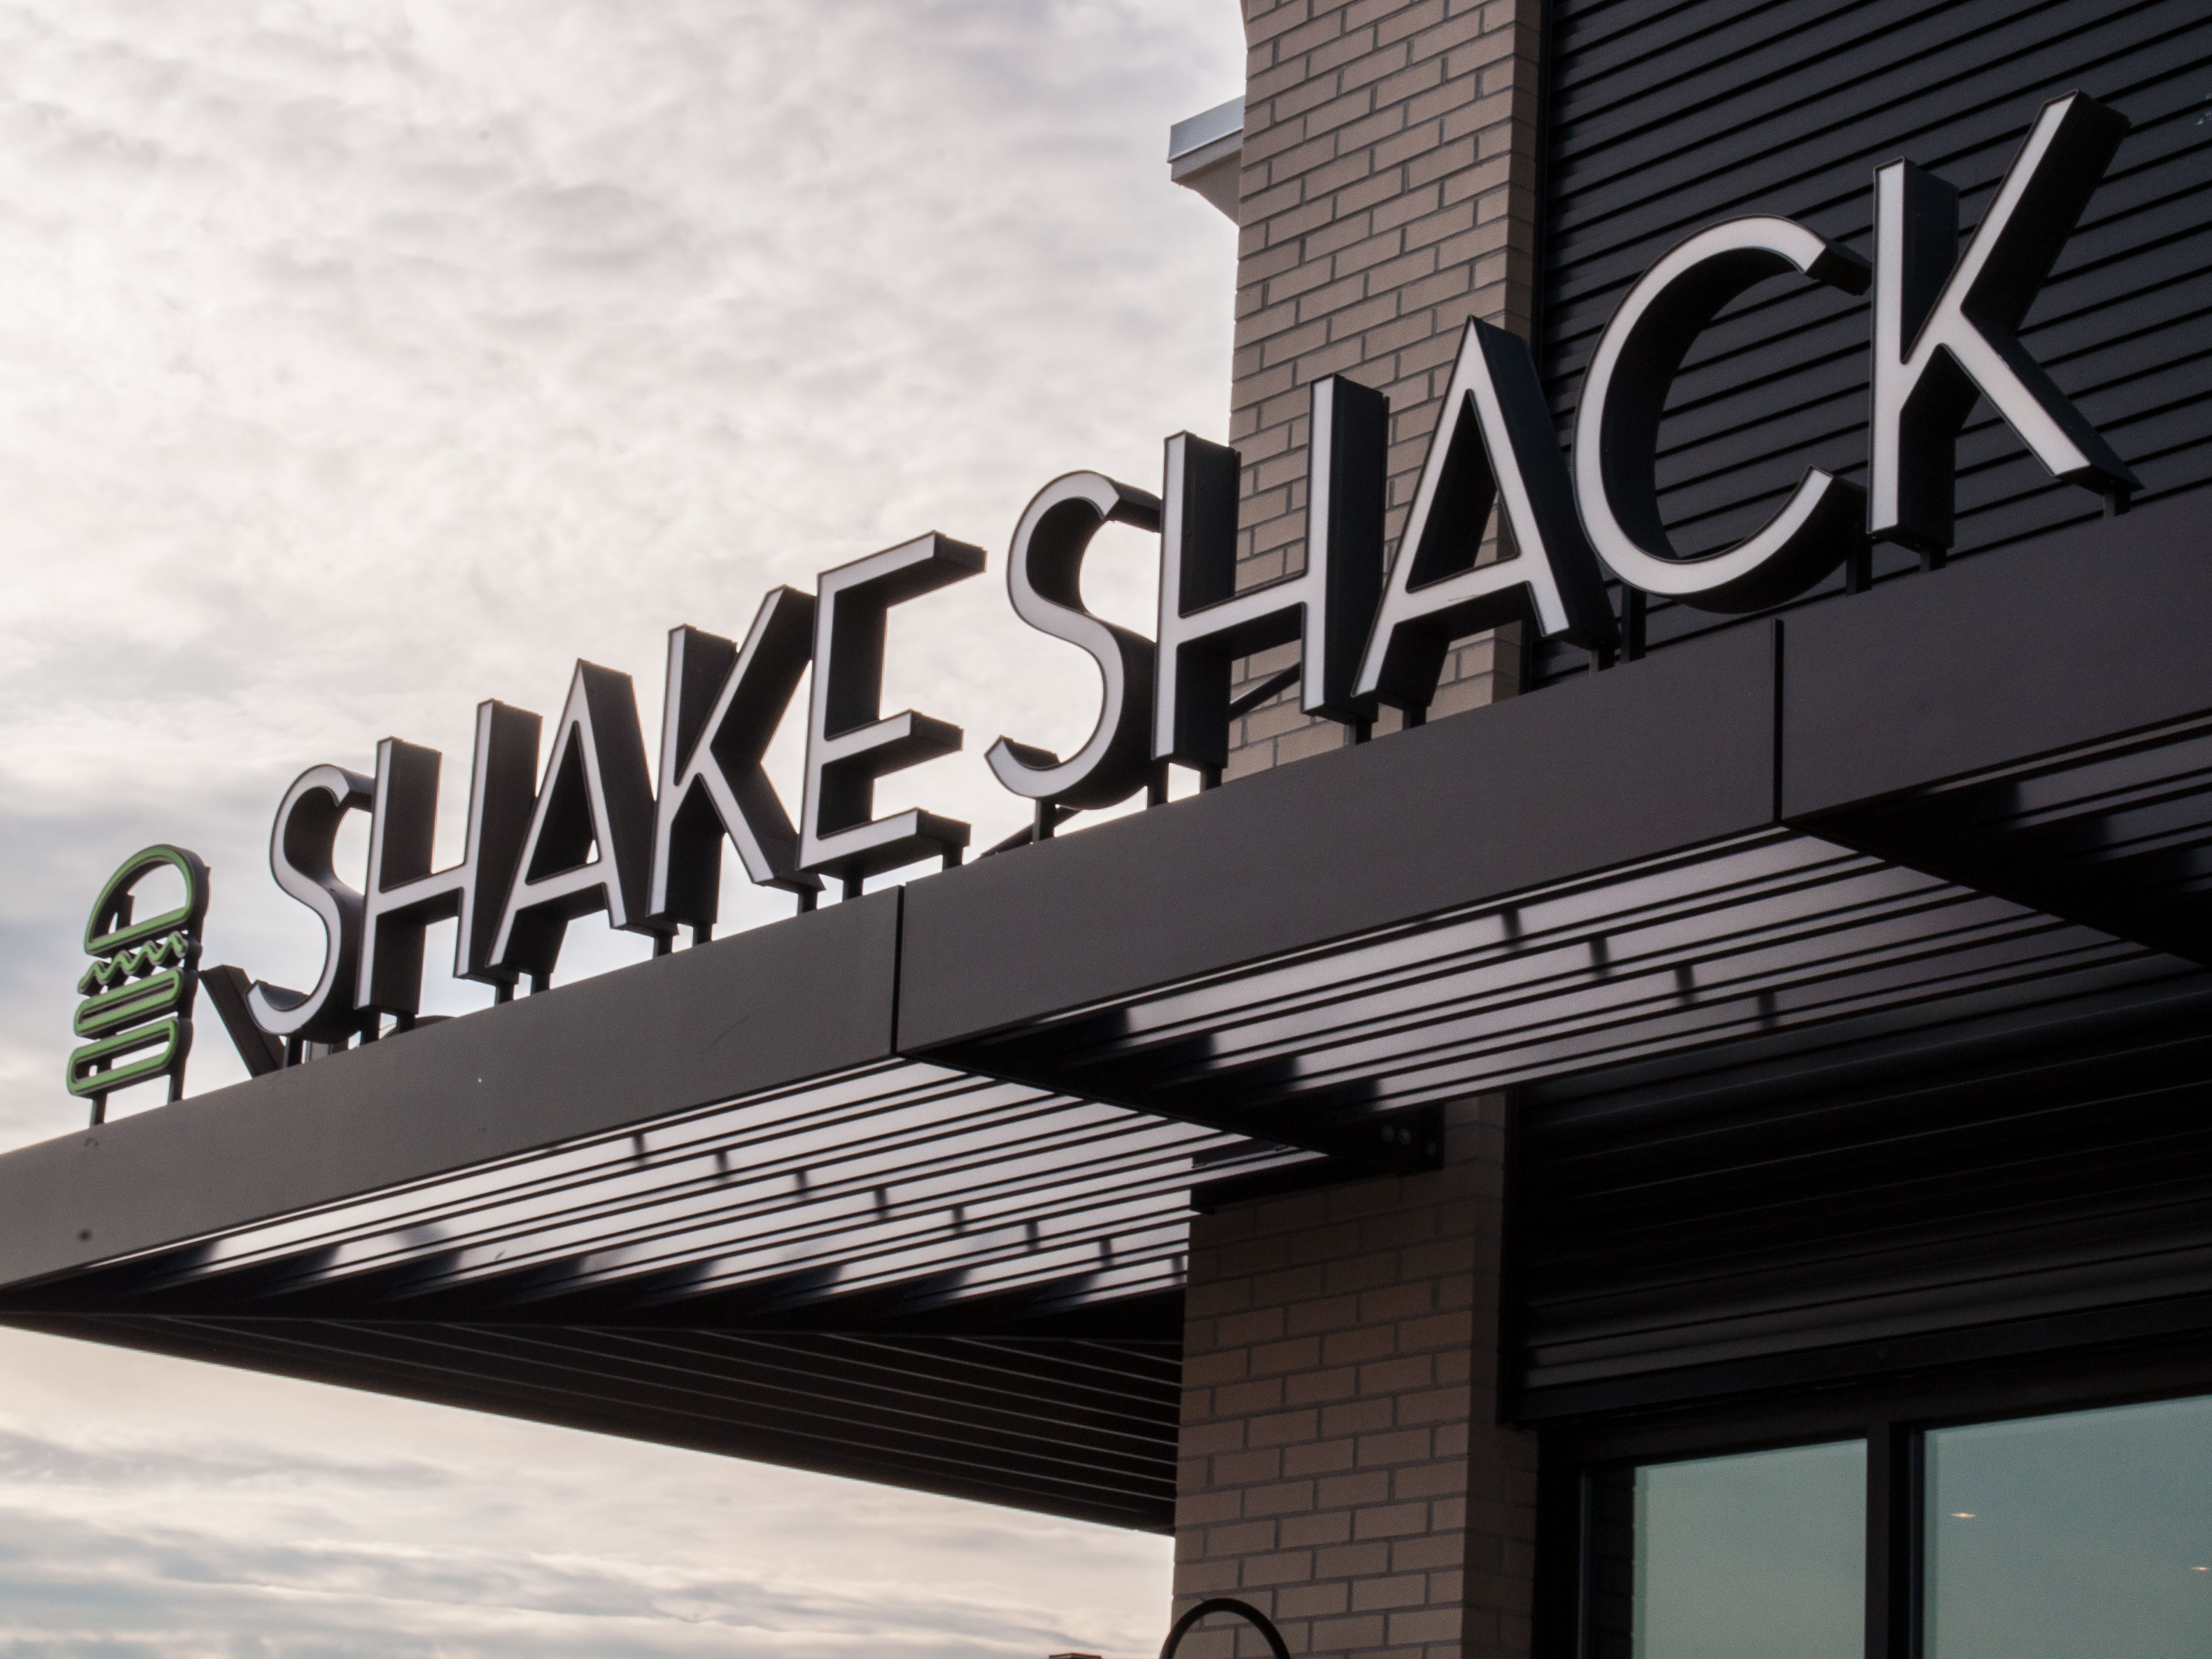 Lake Grove Shake Shack prepares for first week of business